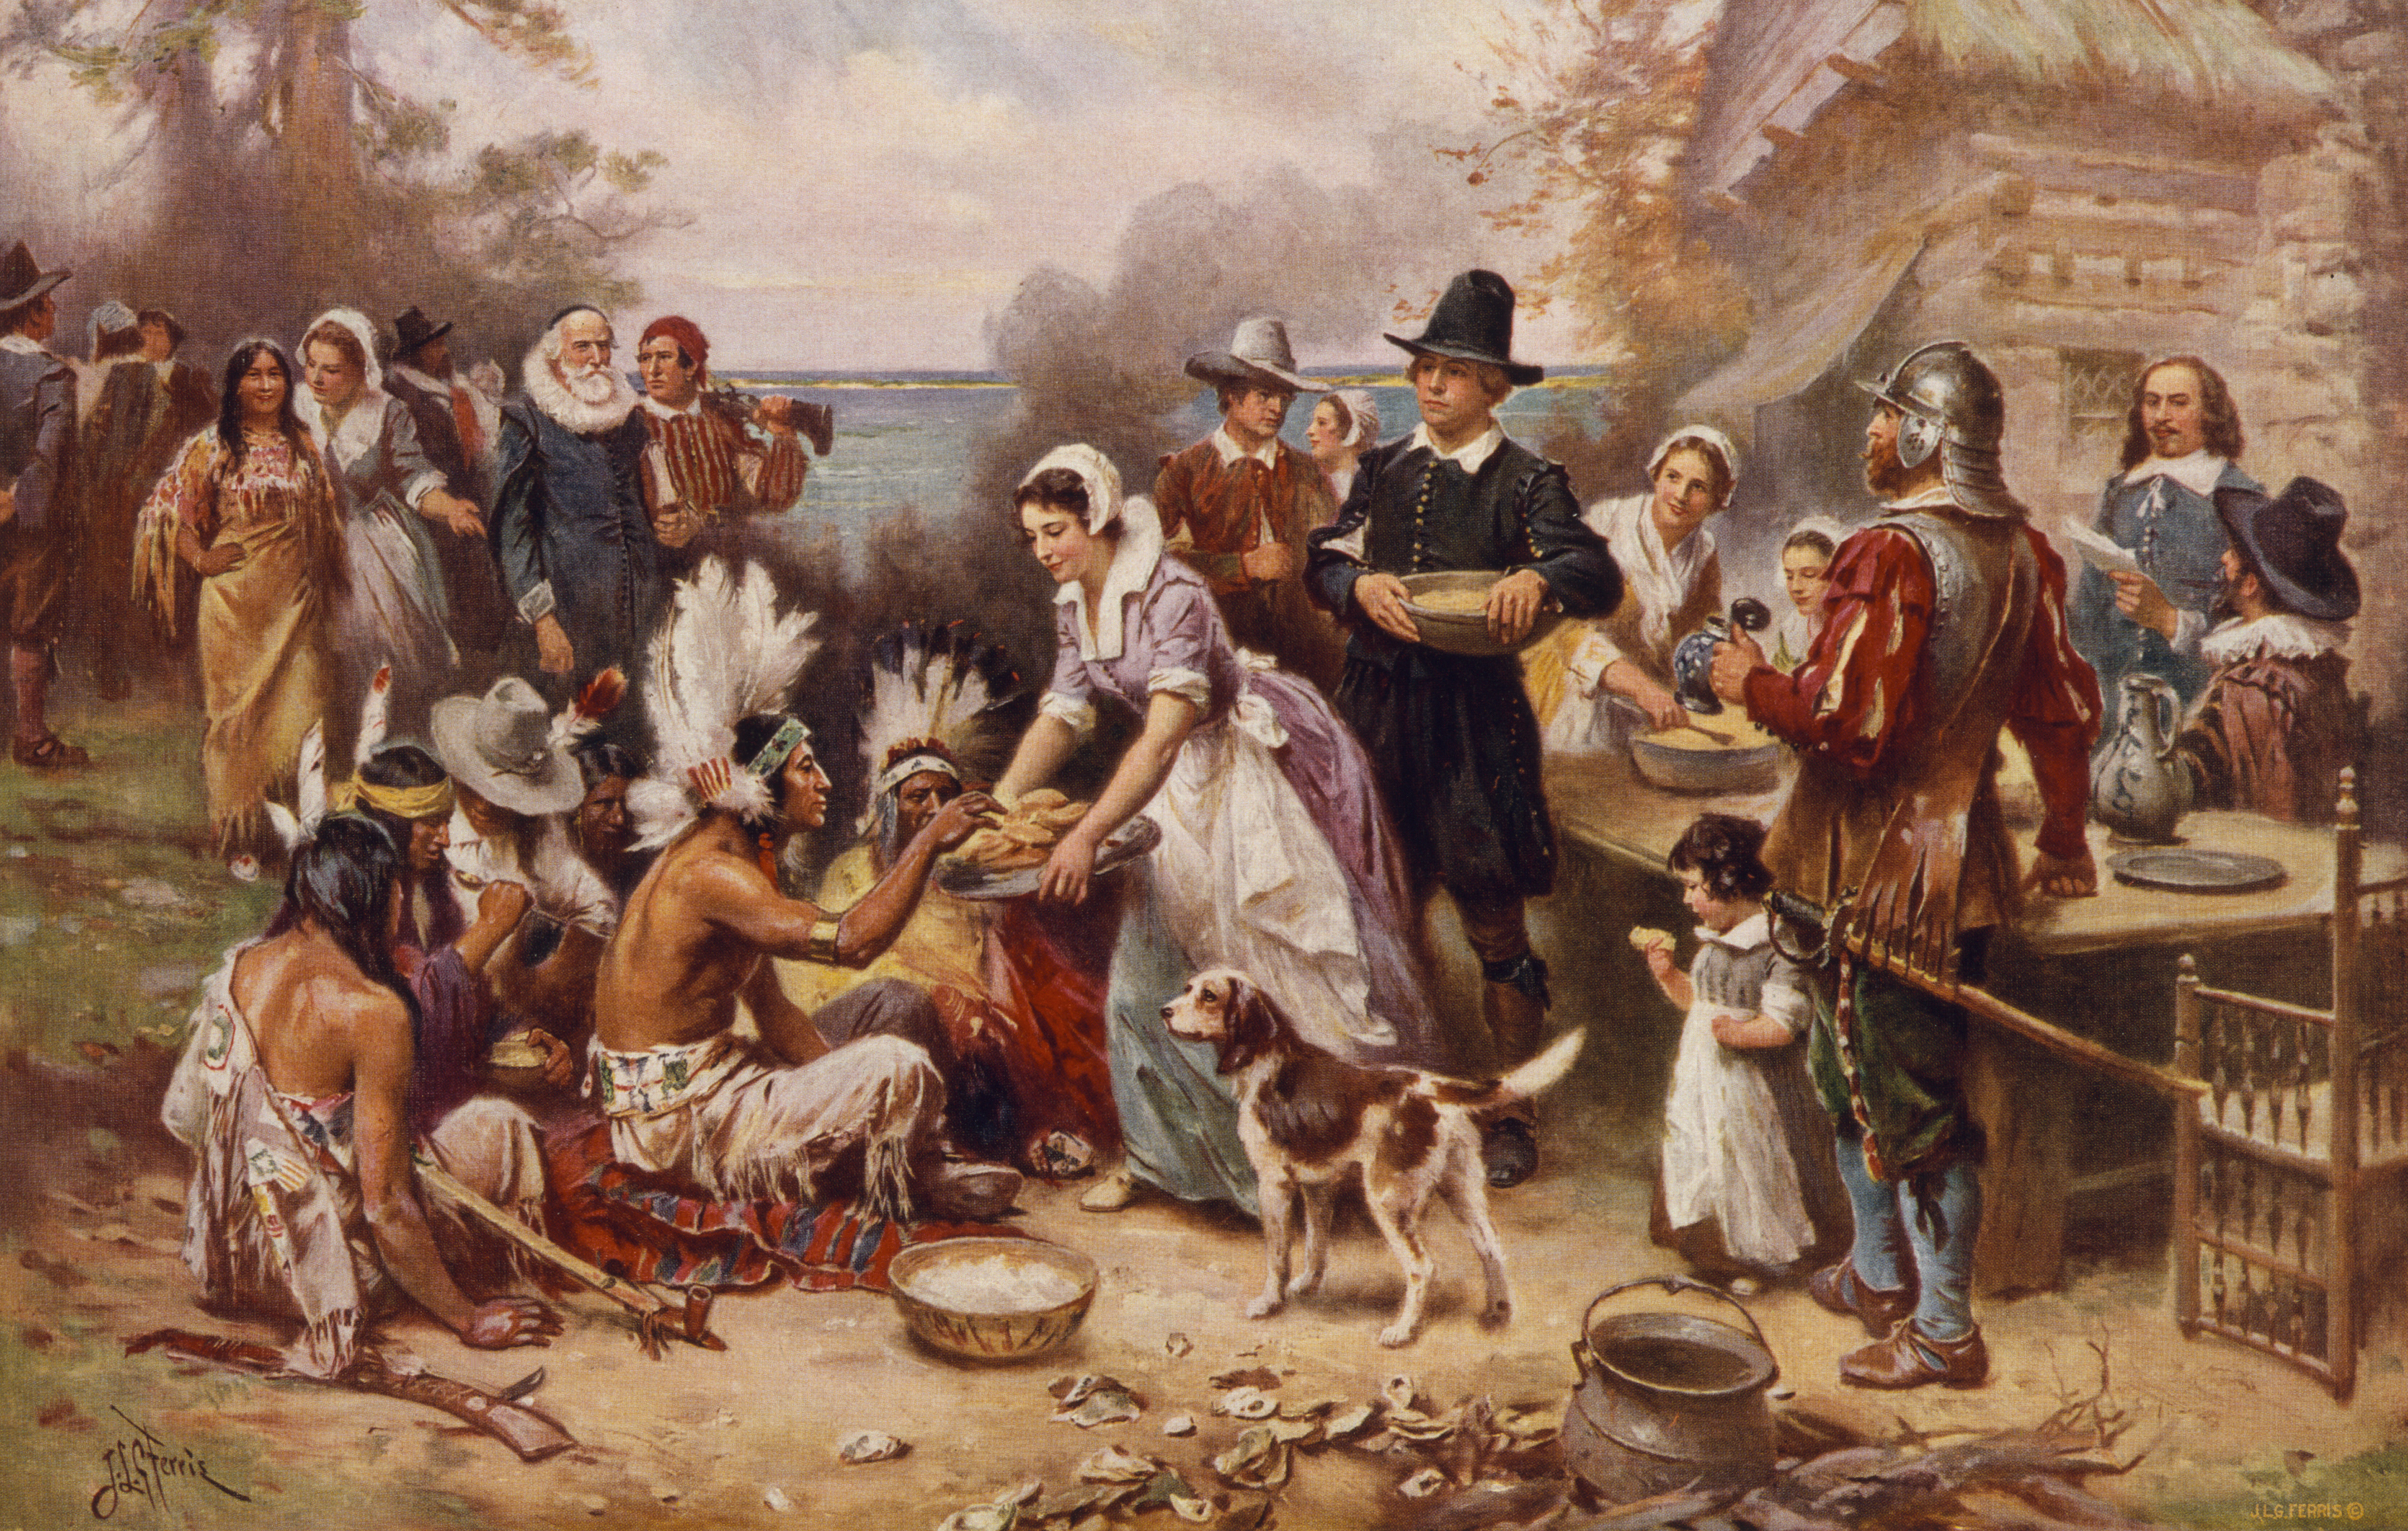 the puritans immigration to the new world History of immigration company in return for granting the company a large portion of the crops to be produced in the new world with the puritans.